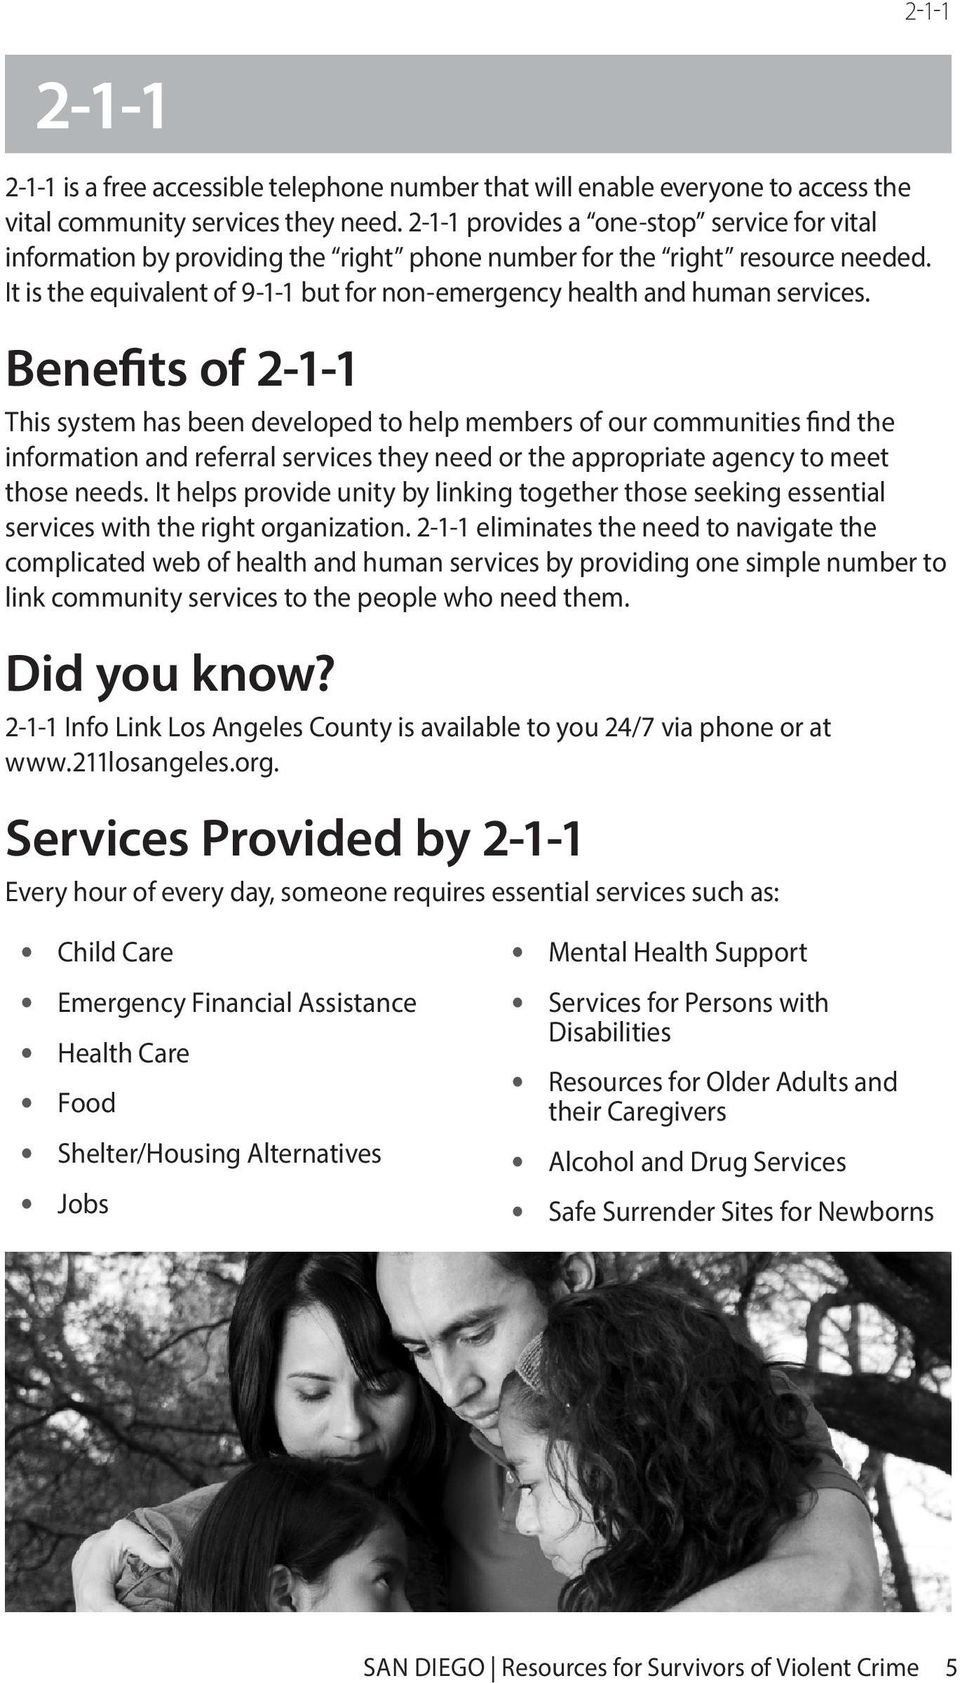 It is the equivalent of 9-1-1 but for non-emergency health and human services.